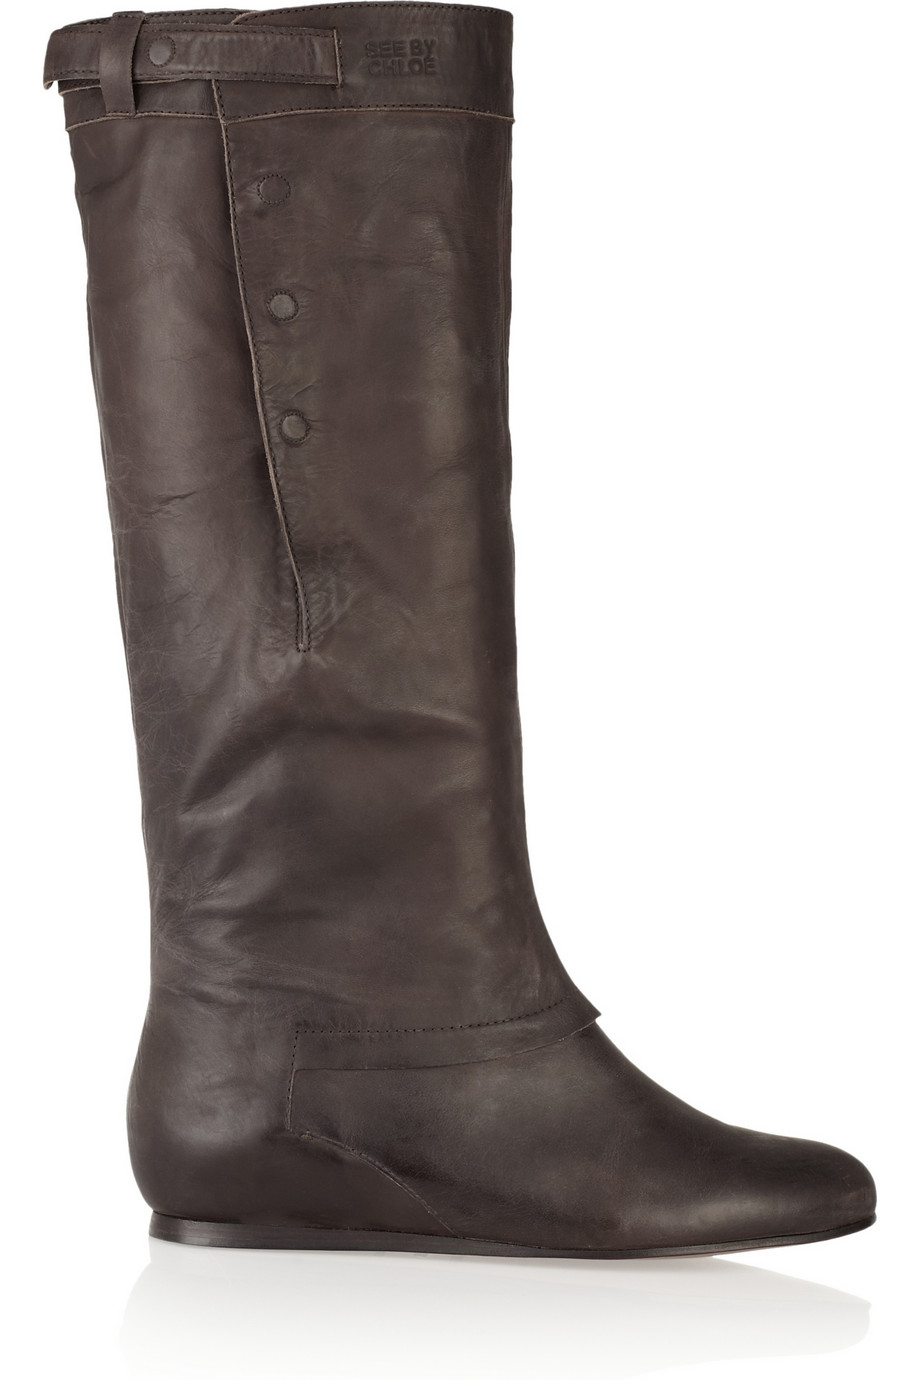 See By Chloé Leather Boots in Brown